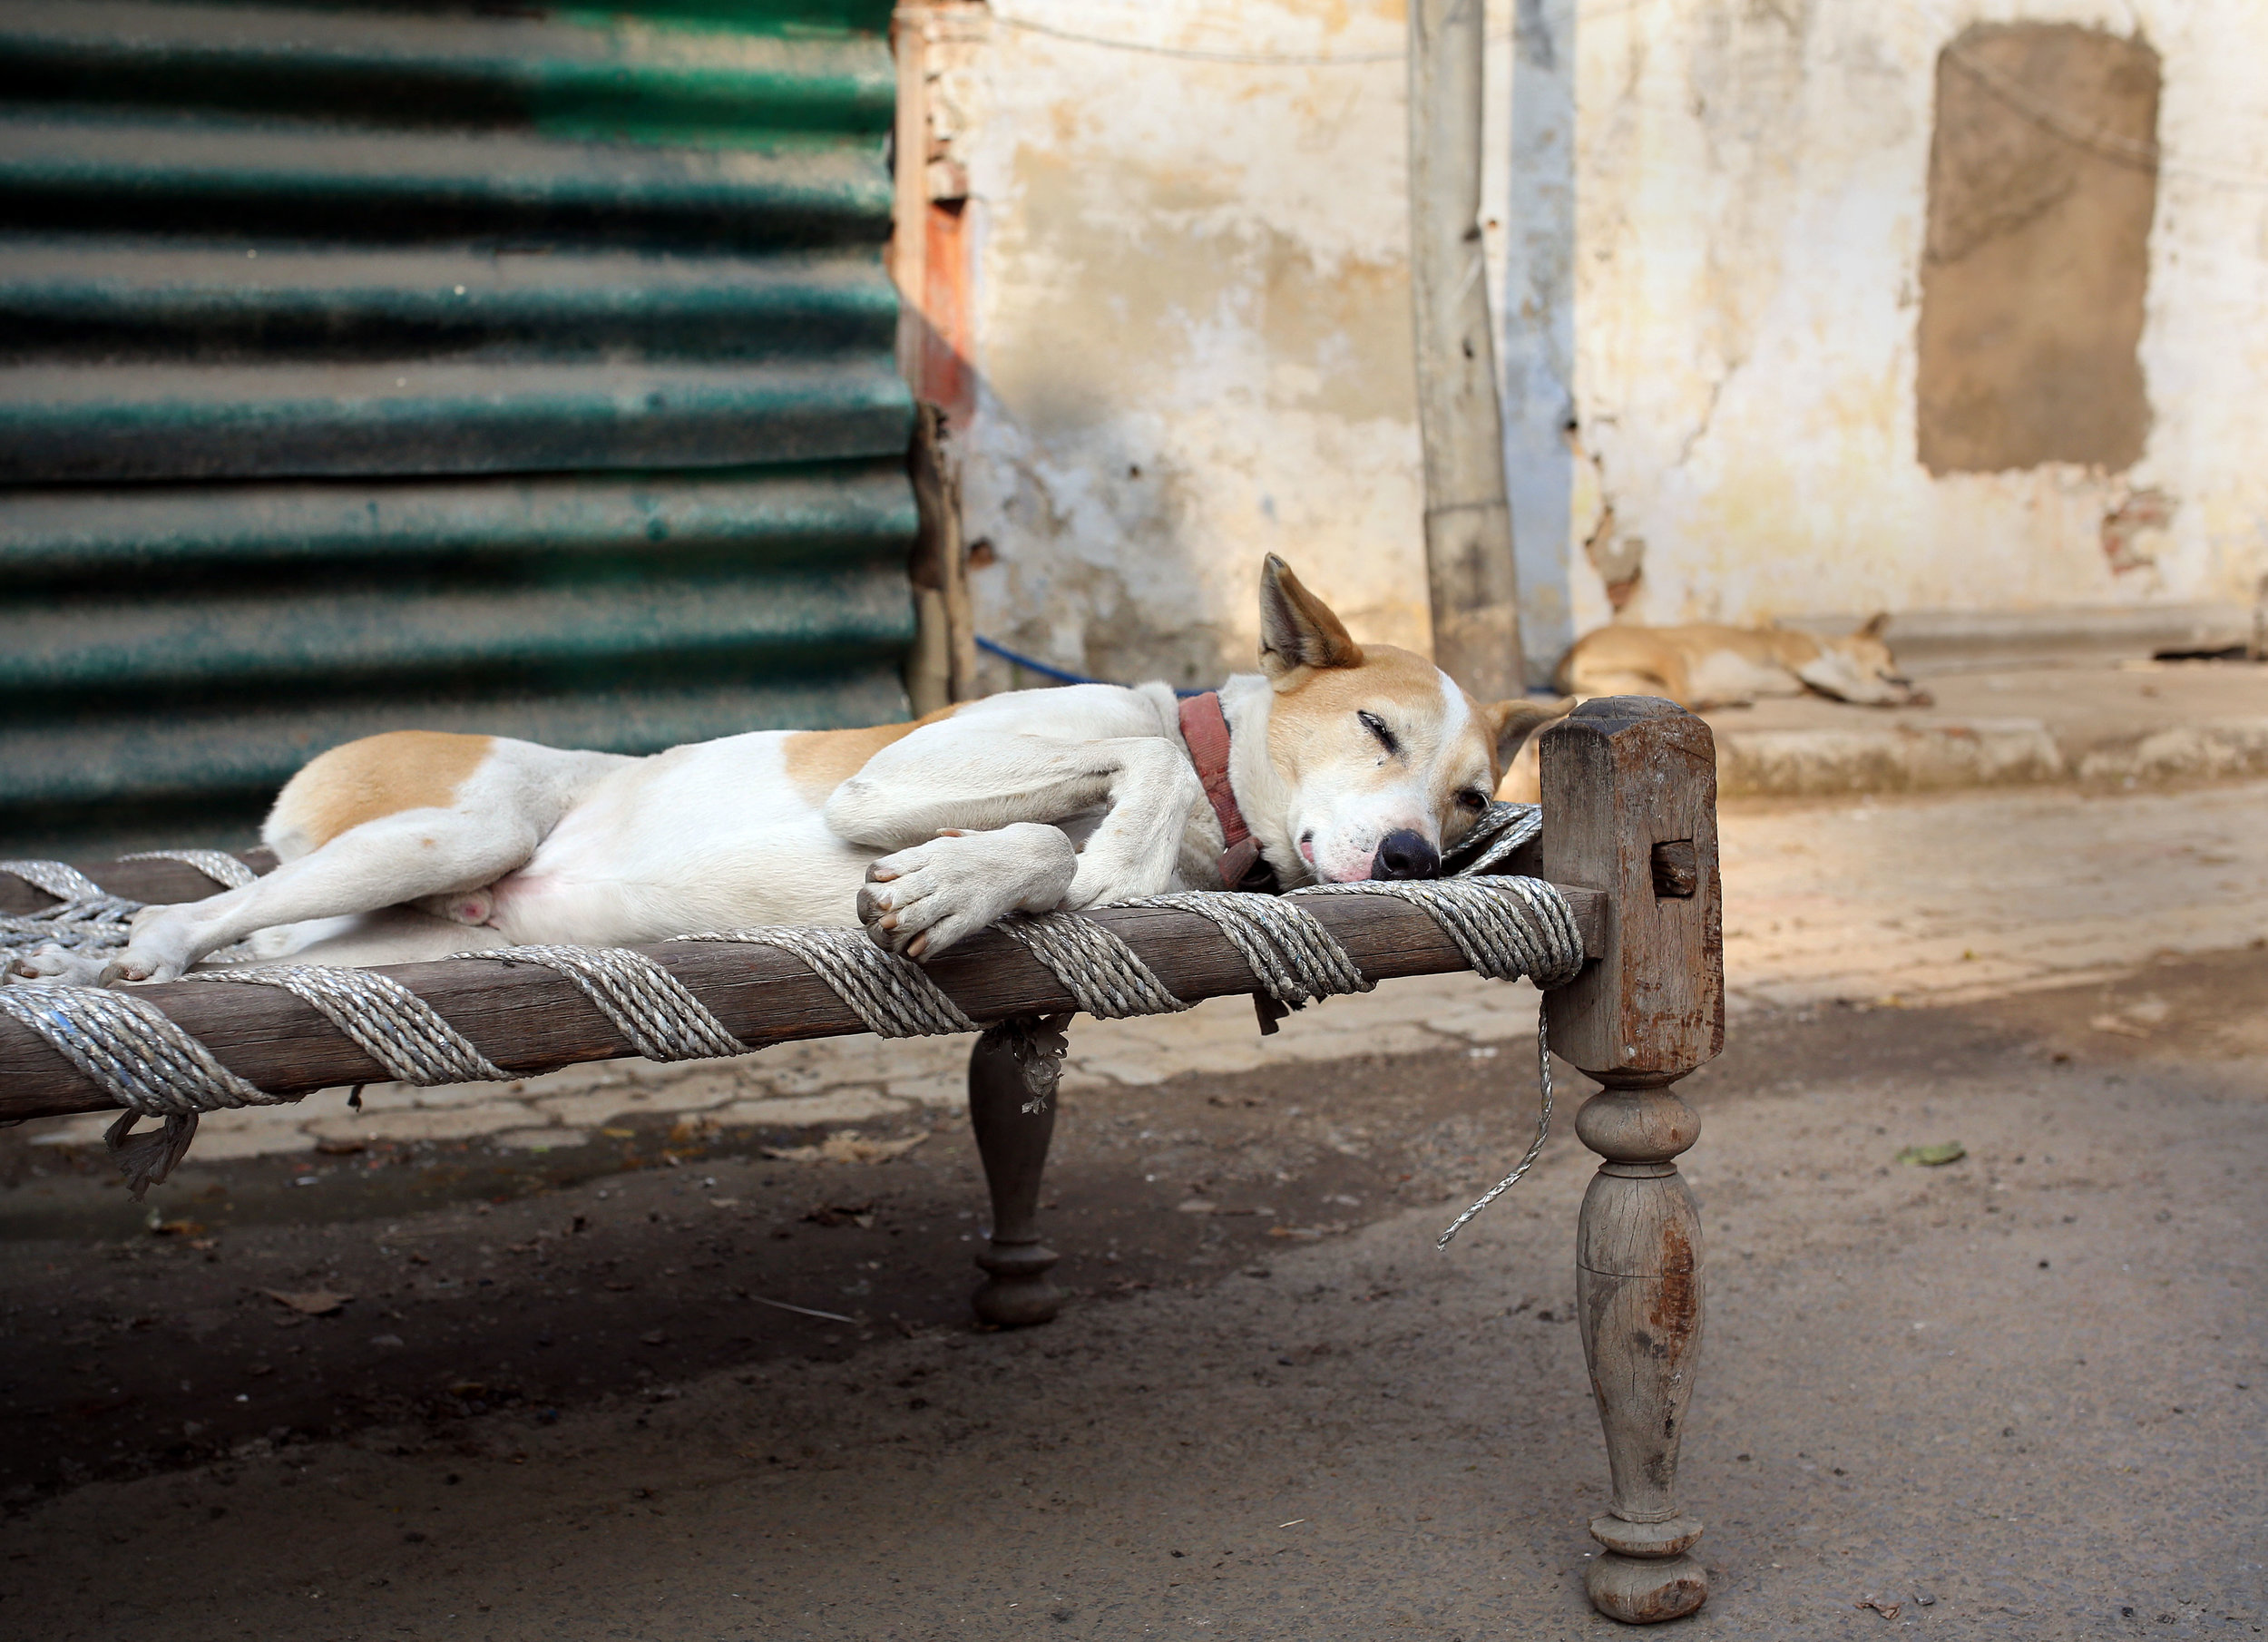 Sleeping dogs pictured in New Delhi, India